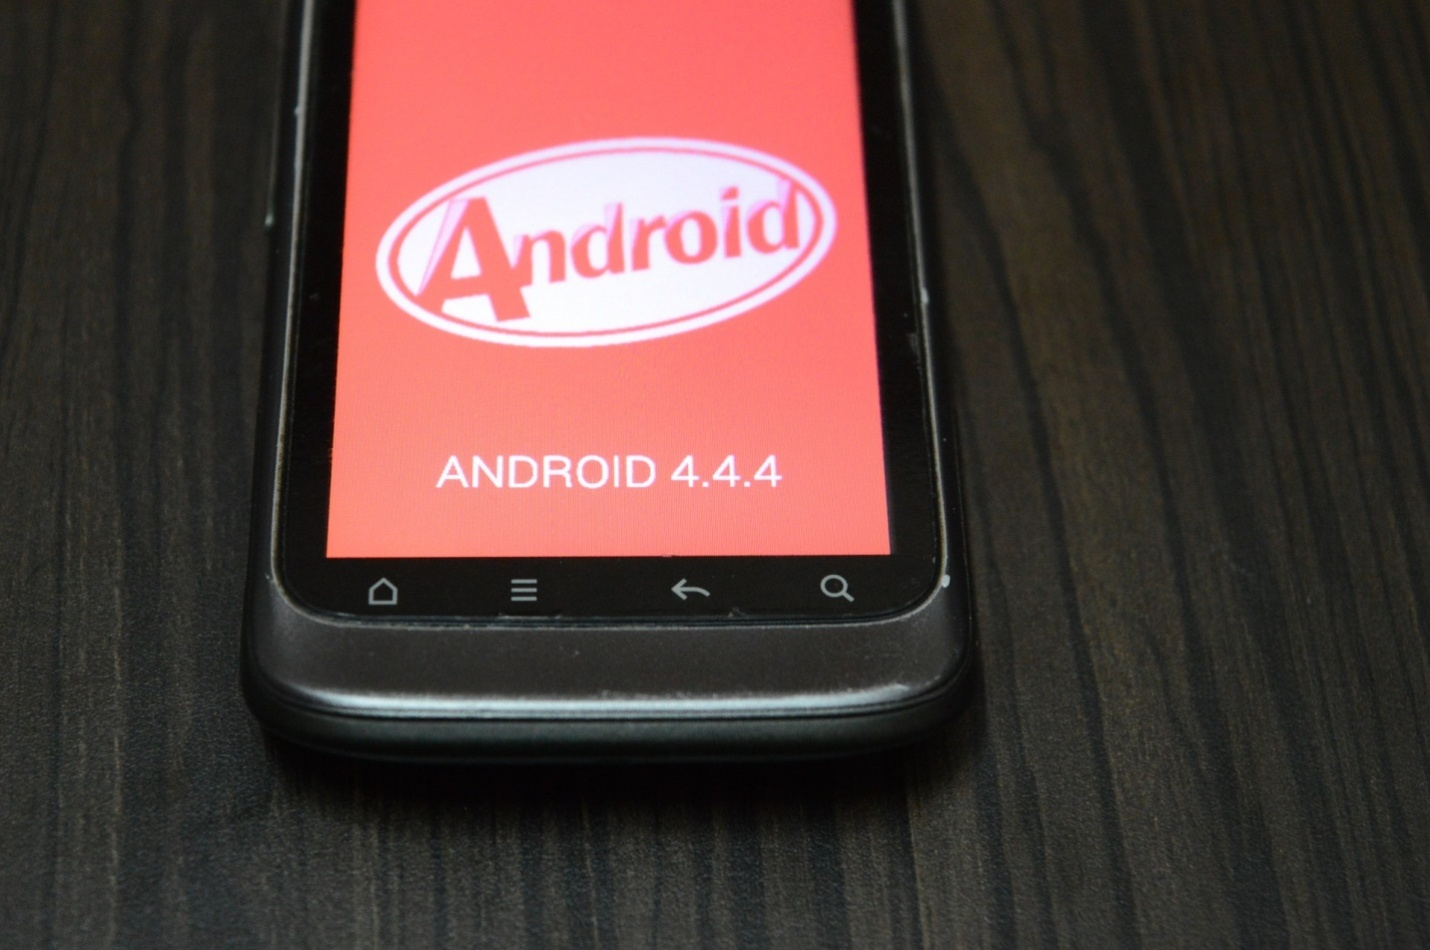 Everyone Talking Android, Business change